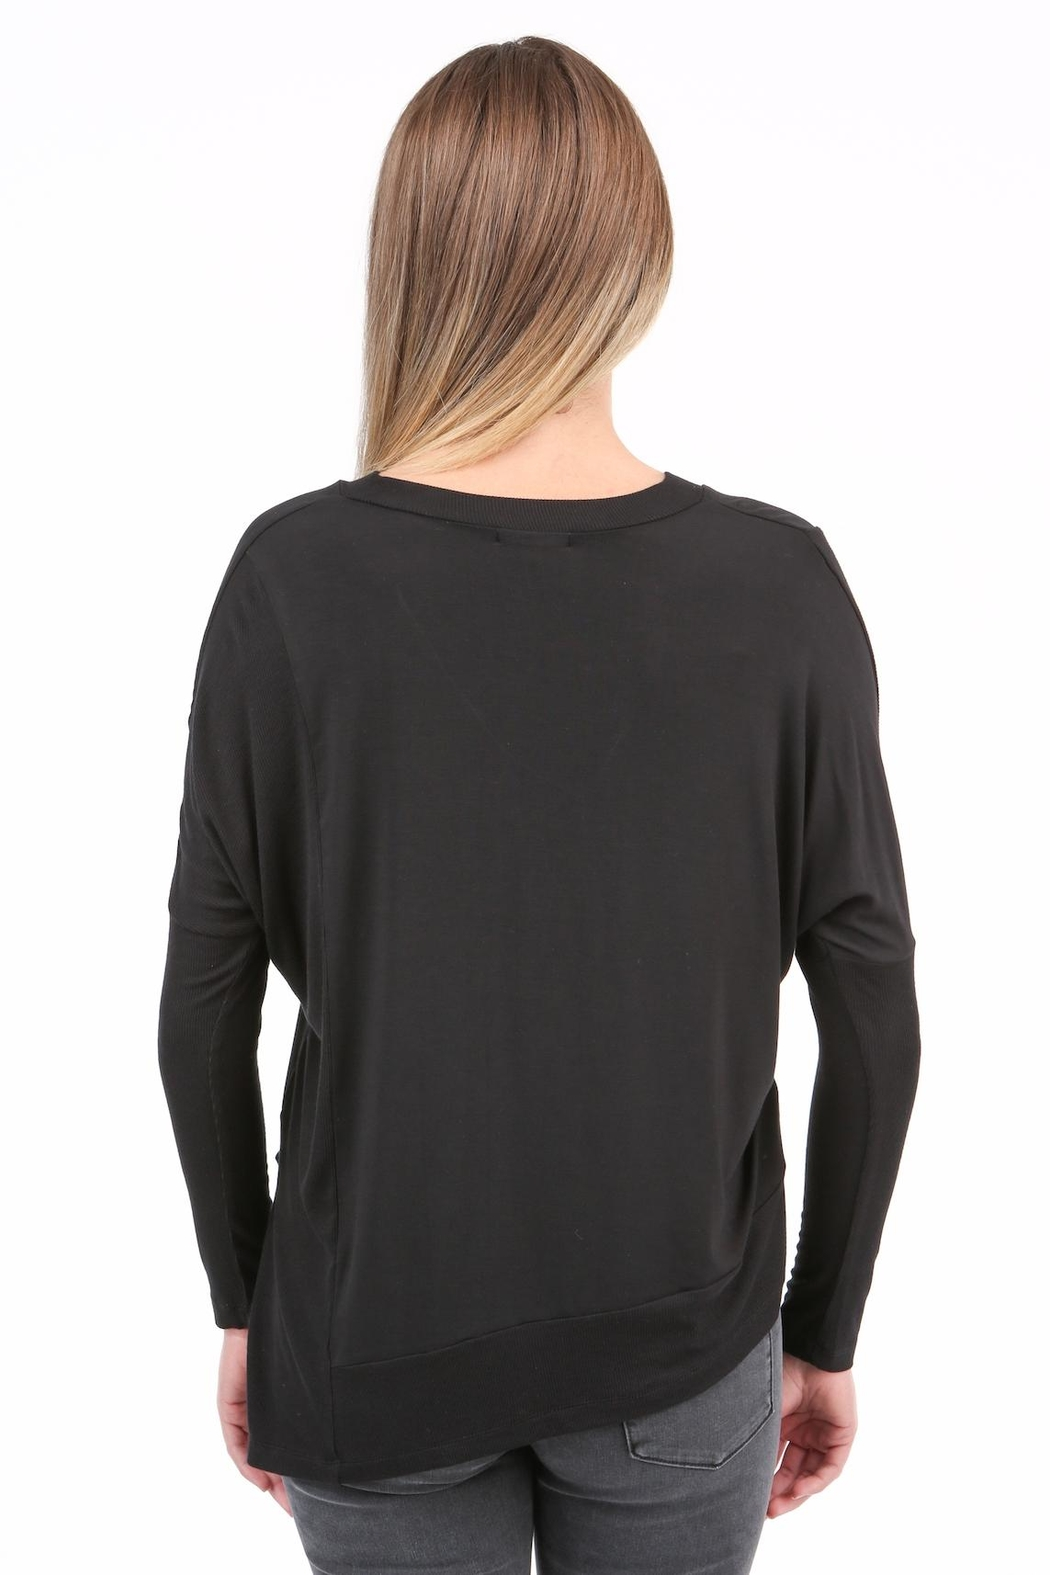 Articles of Society Ribbed Detail Top - Front Full Image